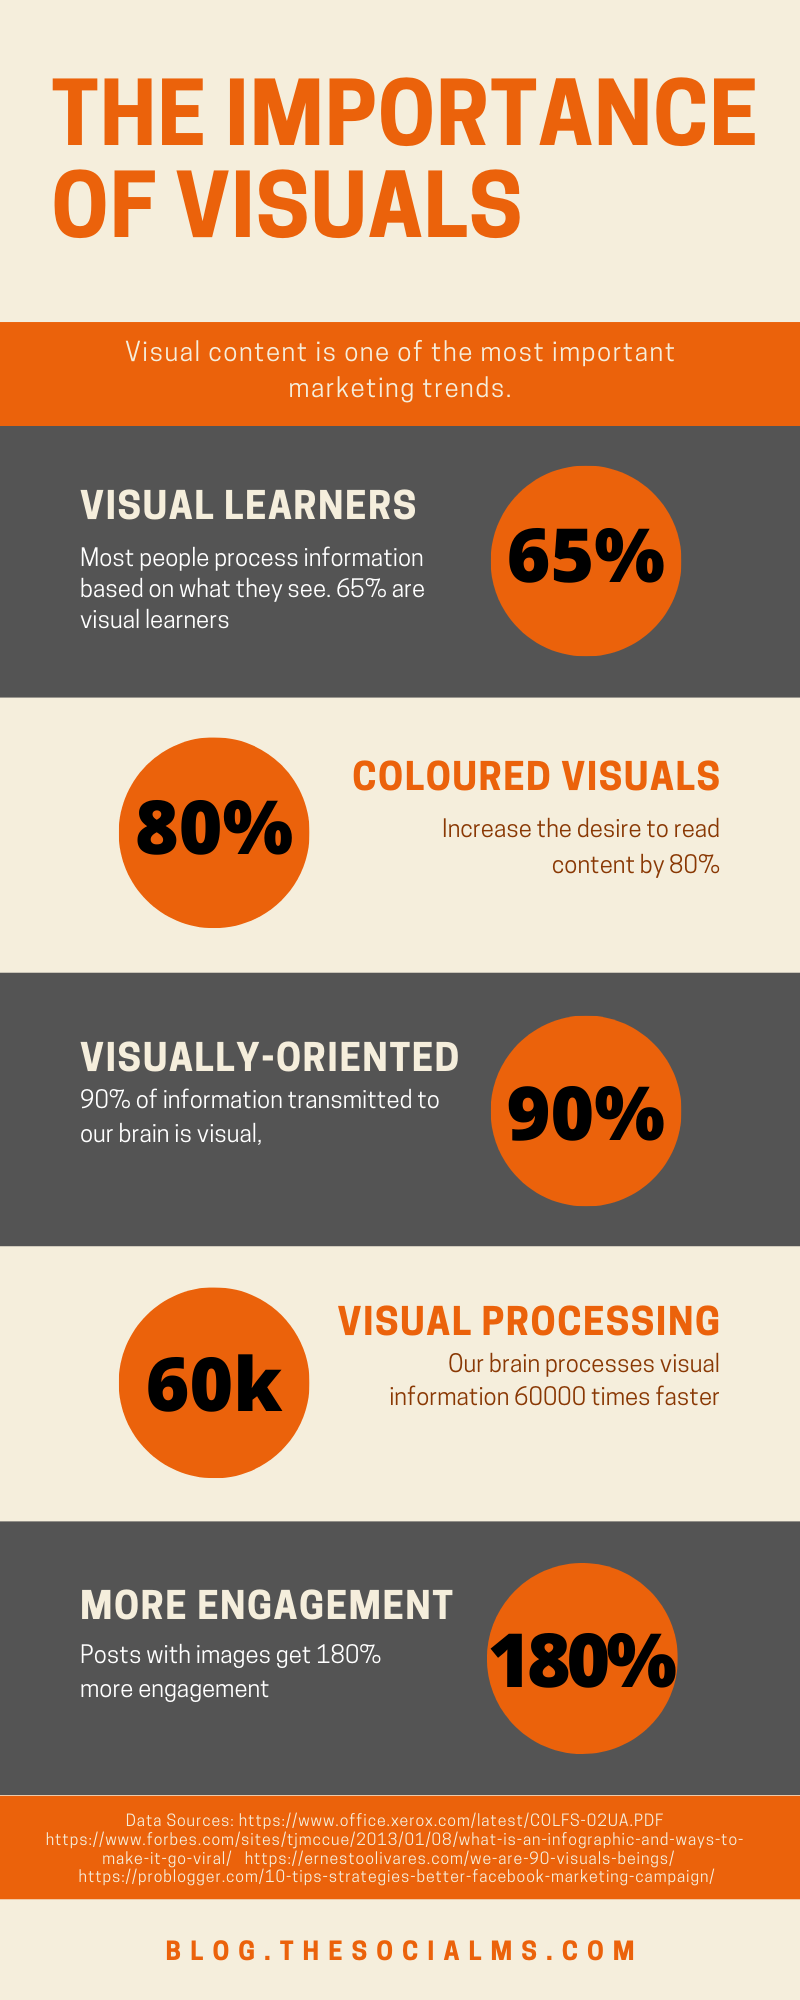 Even though we are writers, we should invest more time to make our posts more valuable by including graphics, images, memes or videos. and here are the numbers that prove the importance of visuals #contentmarketing #contentcreation #visualcontent #marketingstatistics